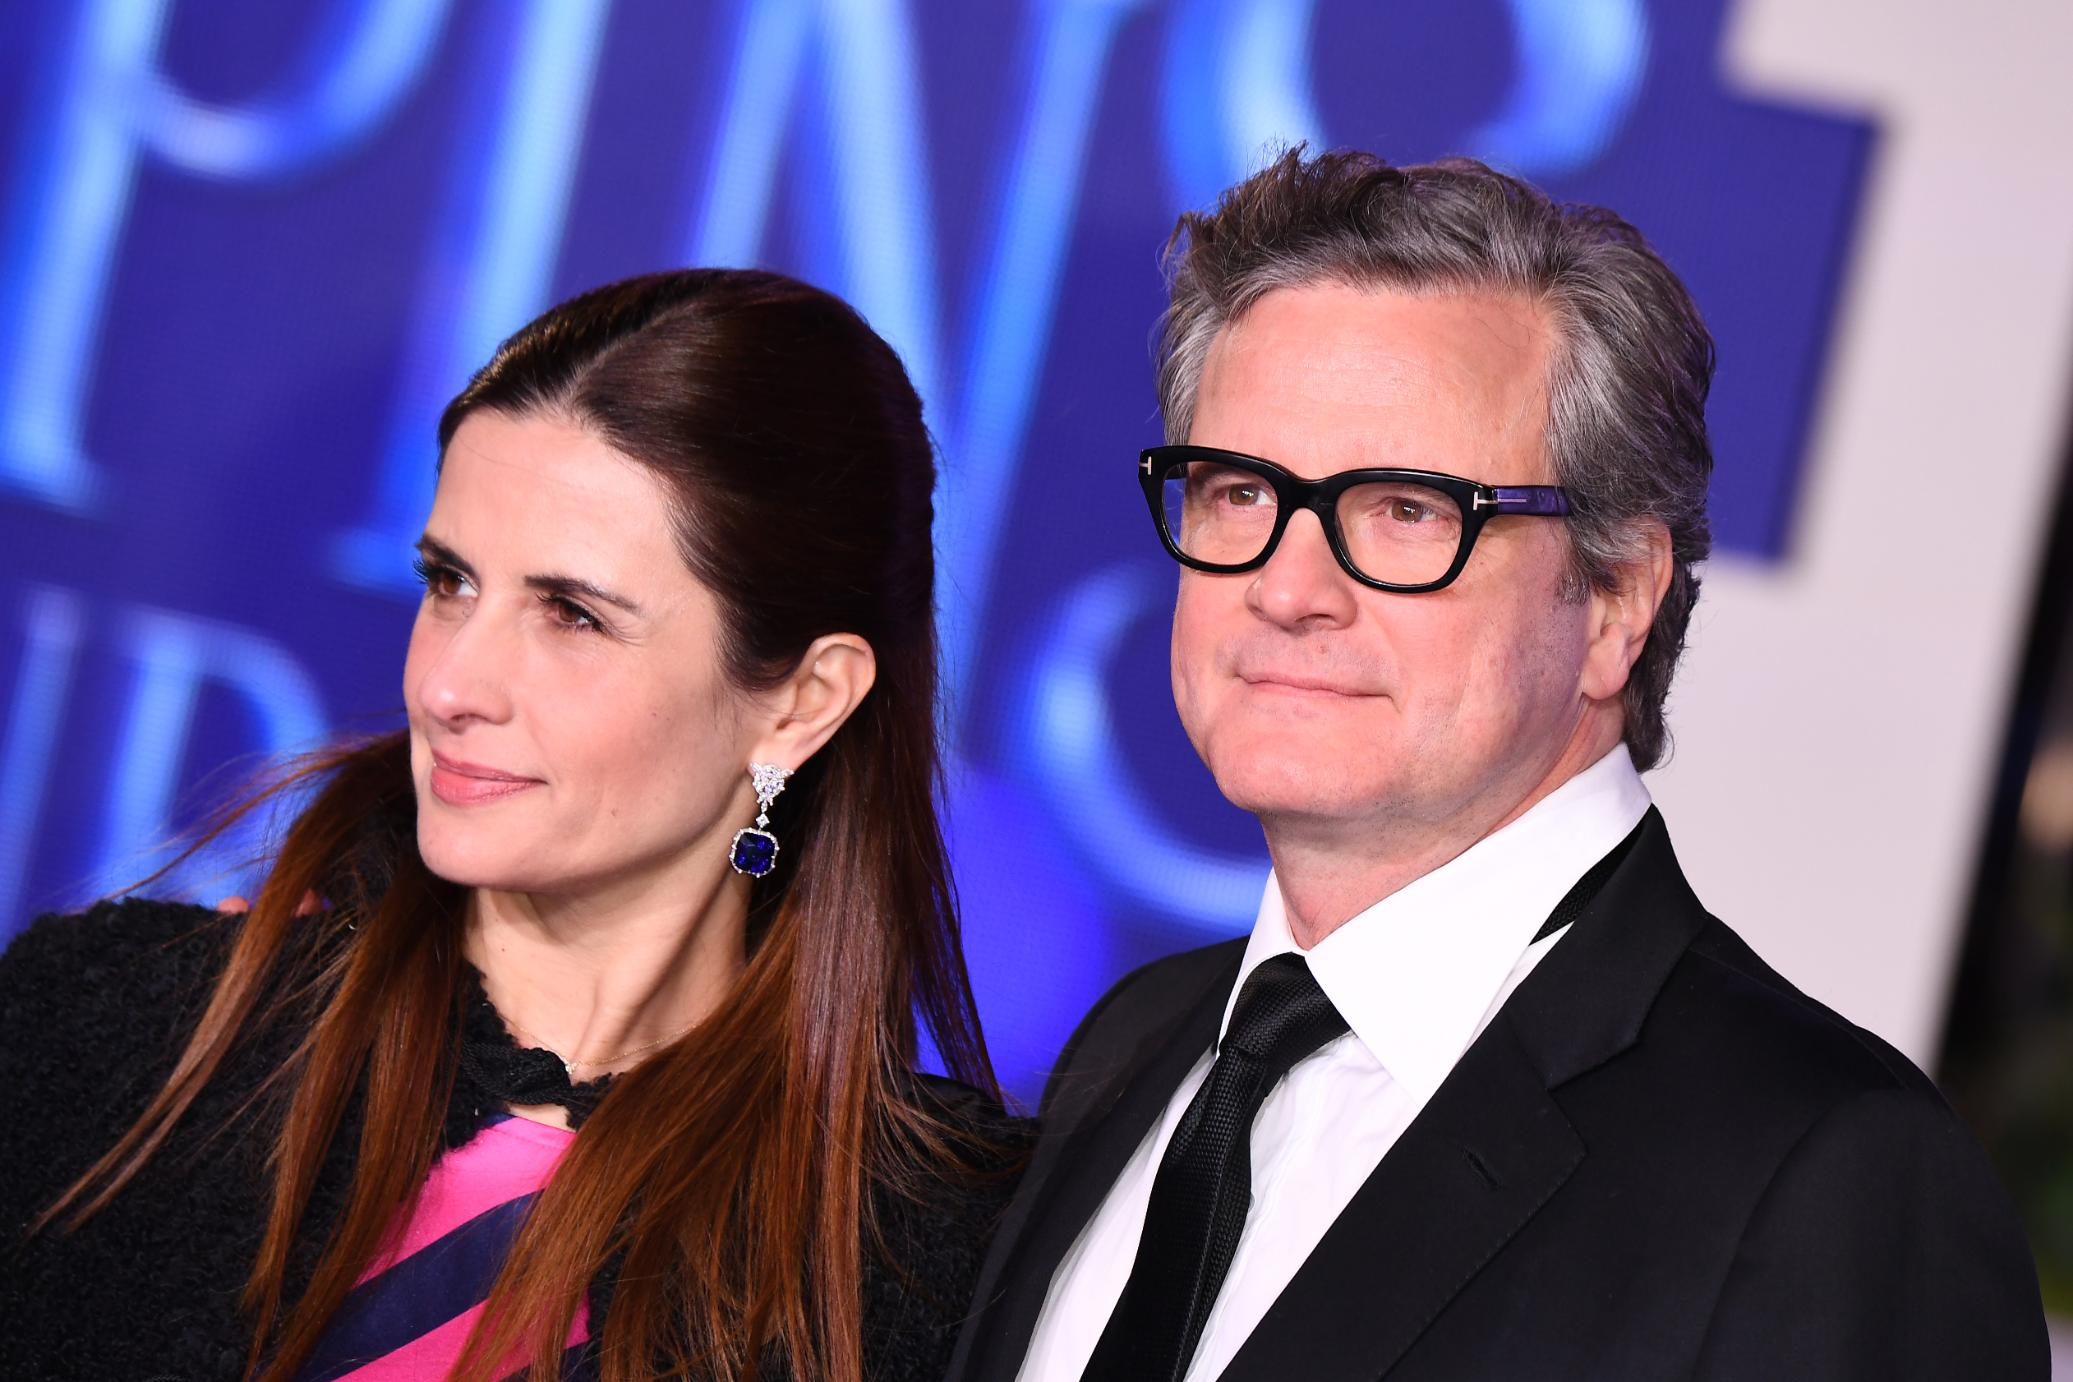 Colin Firth and his wife announce their separation